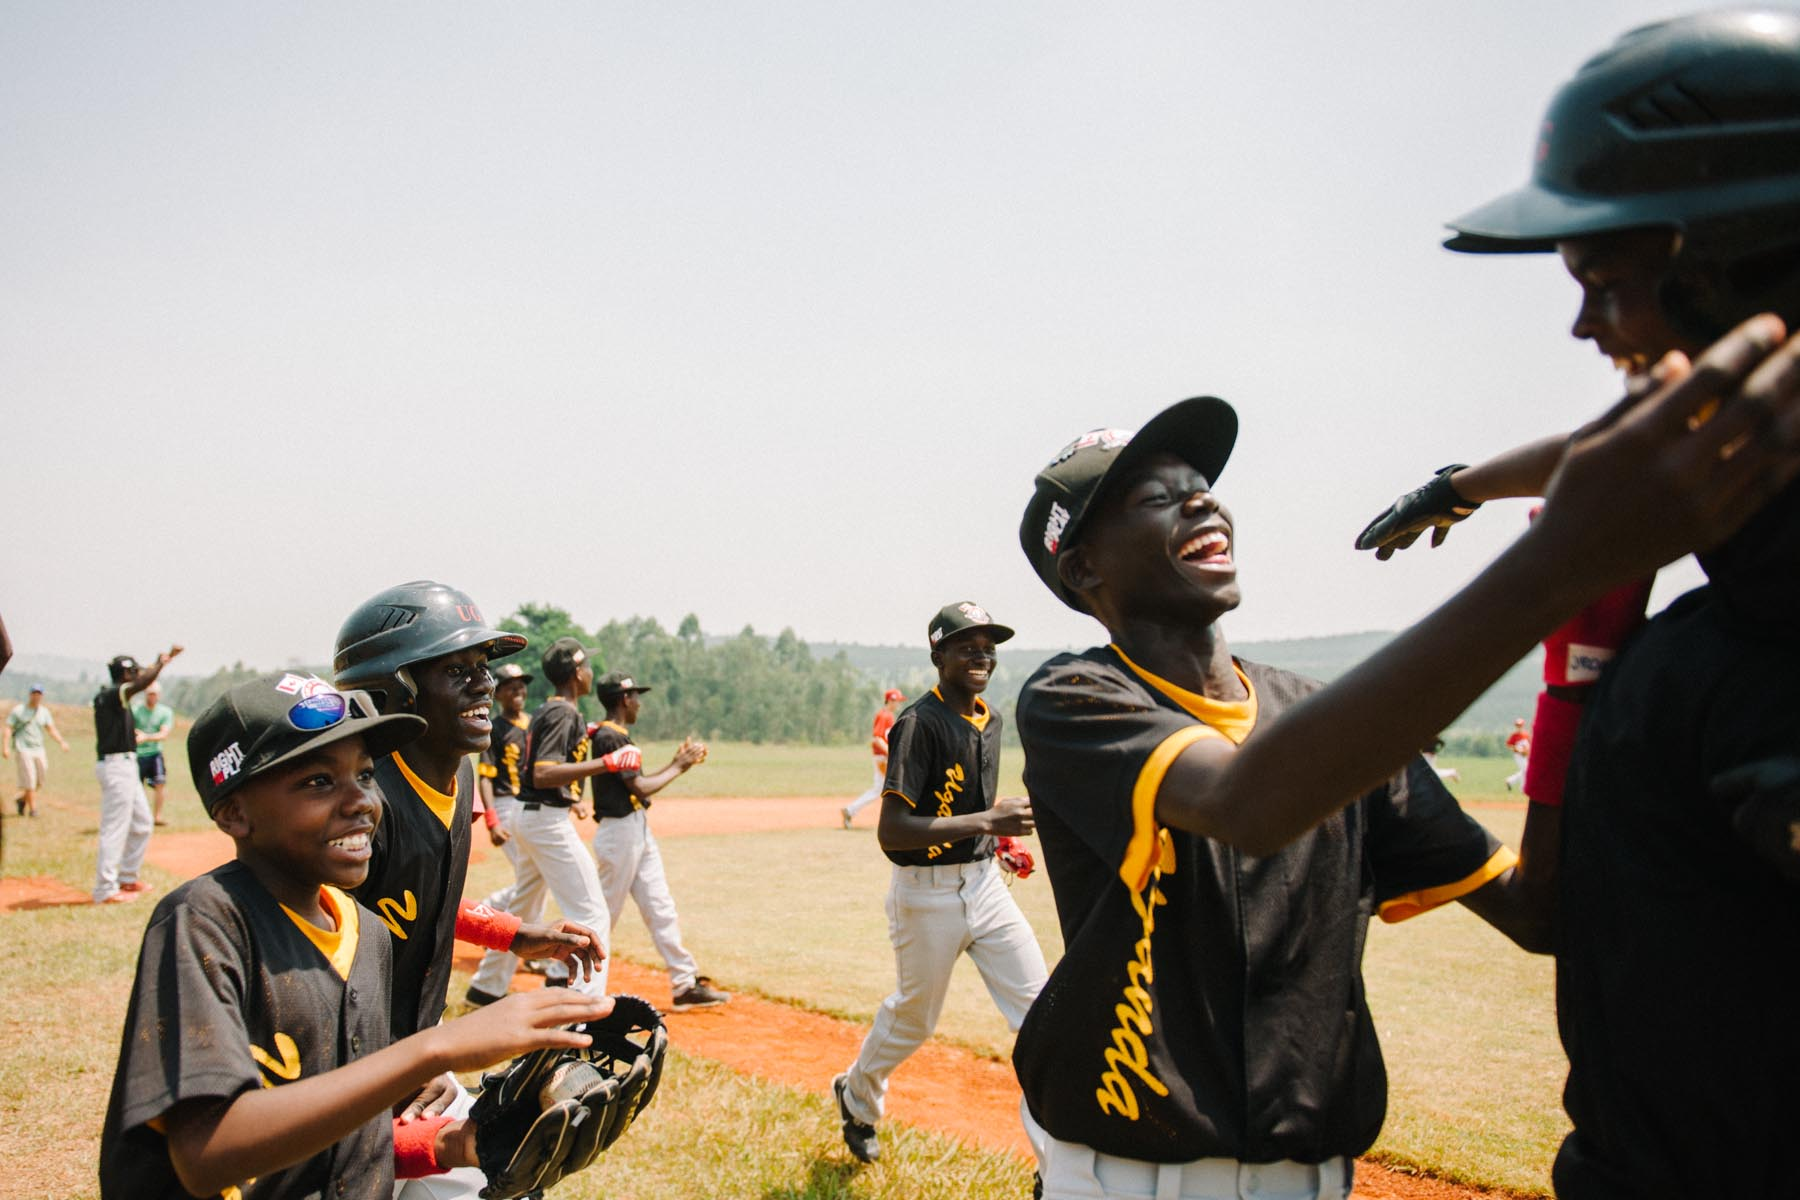 HKP-UgandaBaseball-Day4-0748.jpg